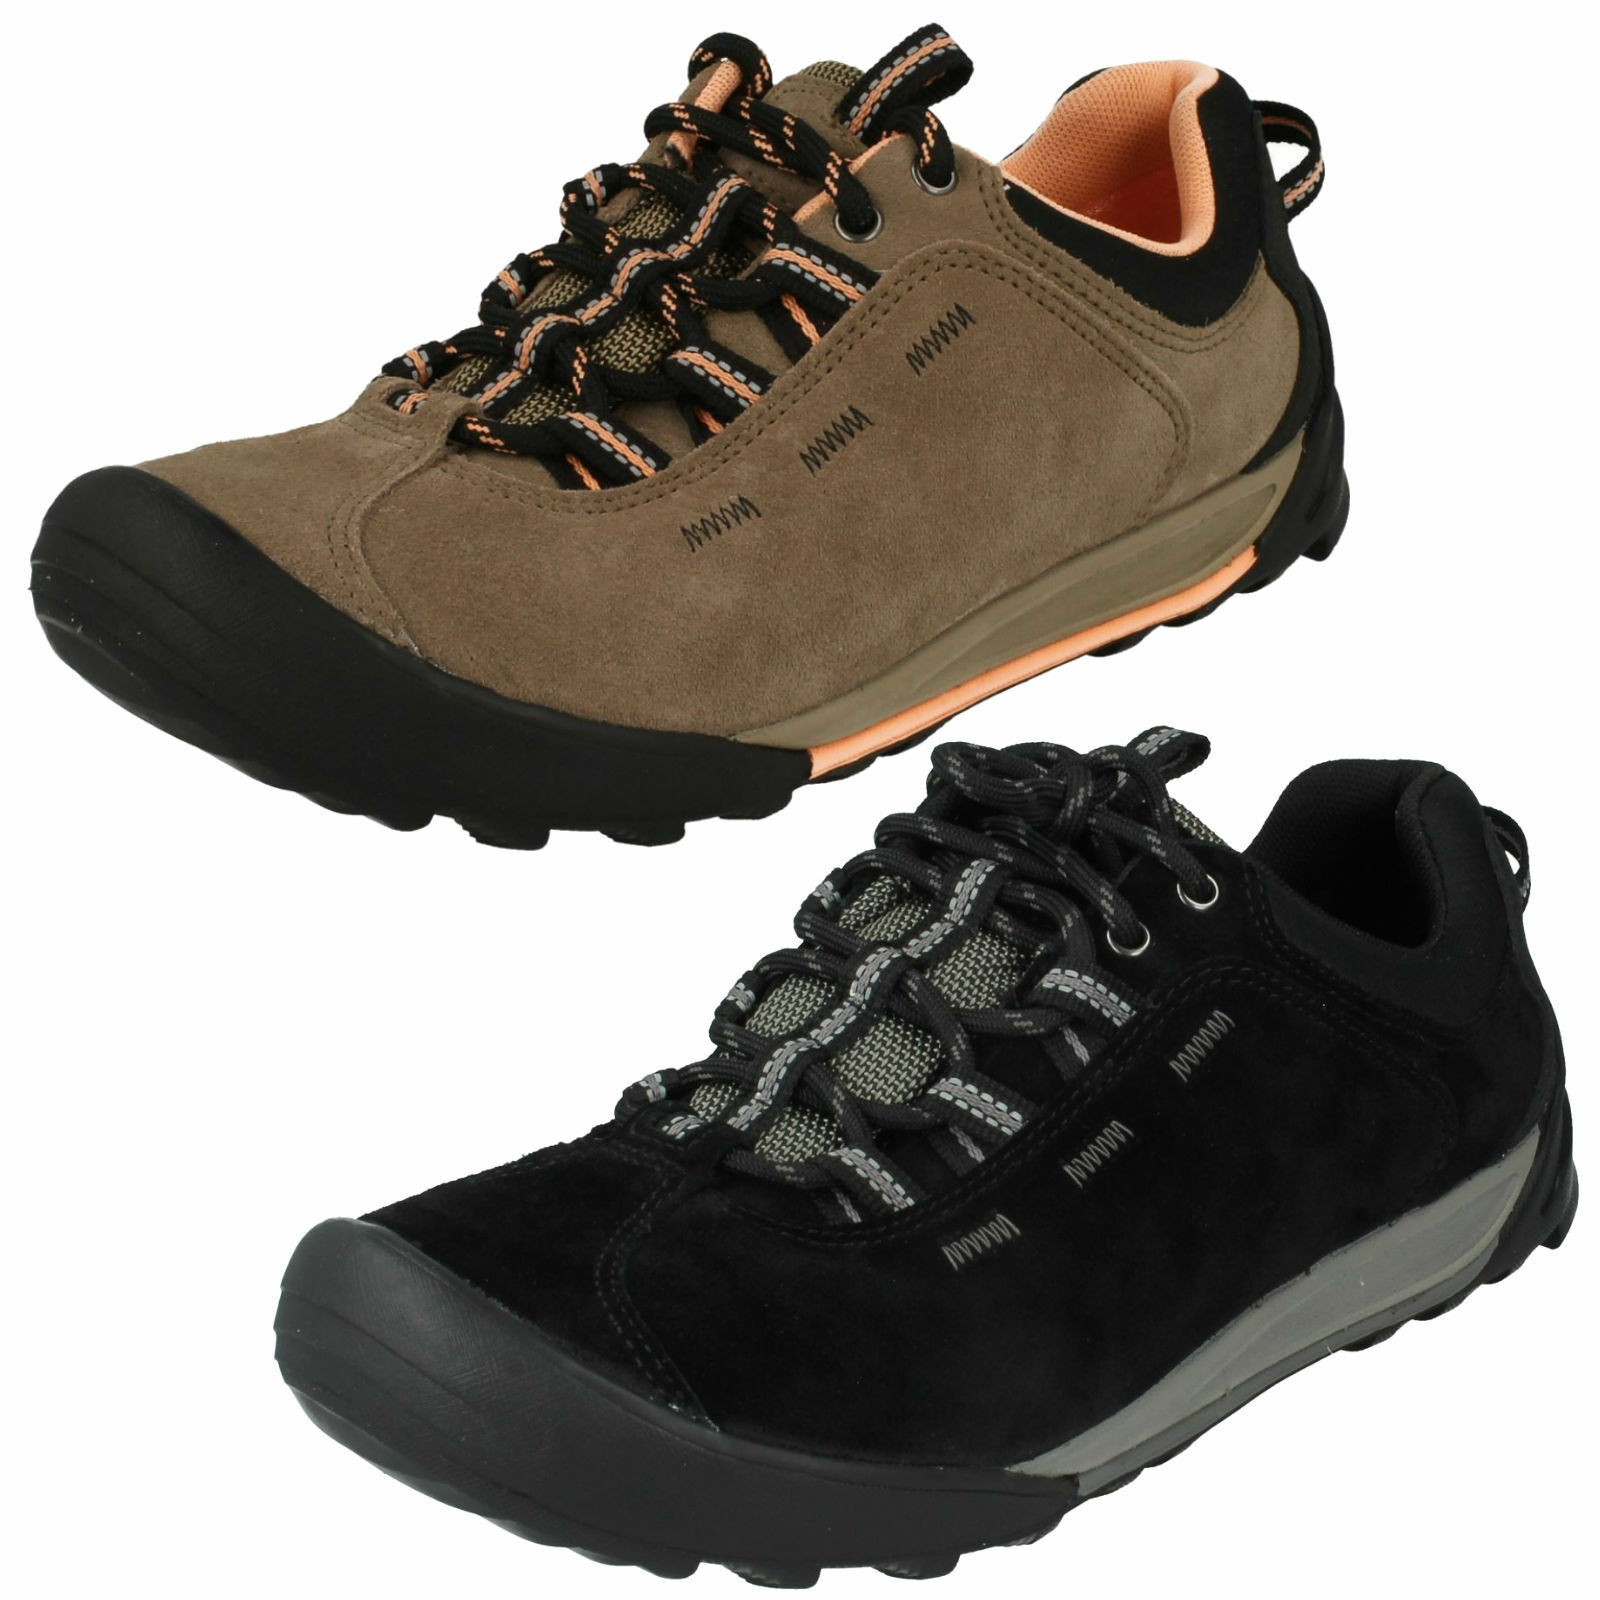 LADIES CLARKS LACE WEAR UP ACTIVE WEAR LACE SPORTS OUTDOOR TRAINERS Schuhe OUTLAY WEST eb42db